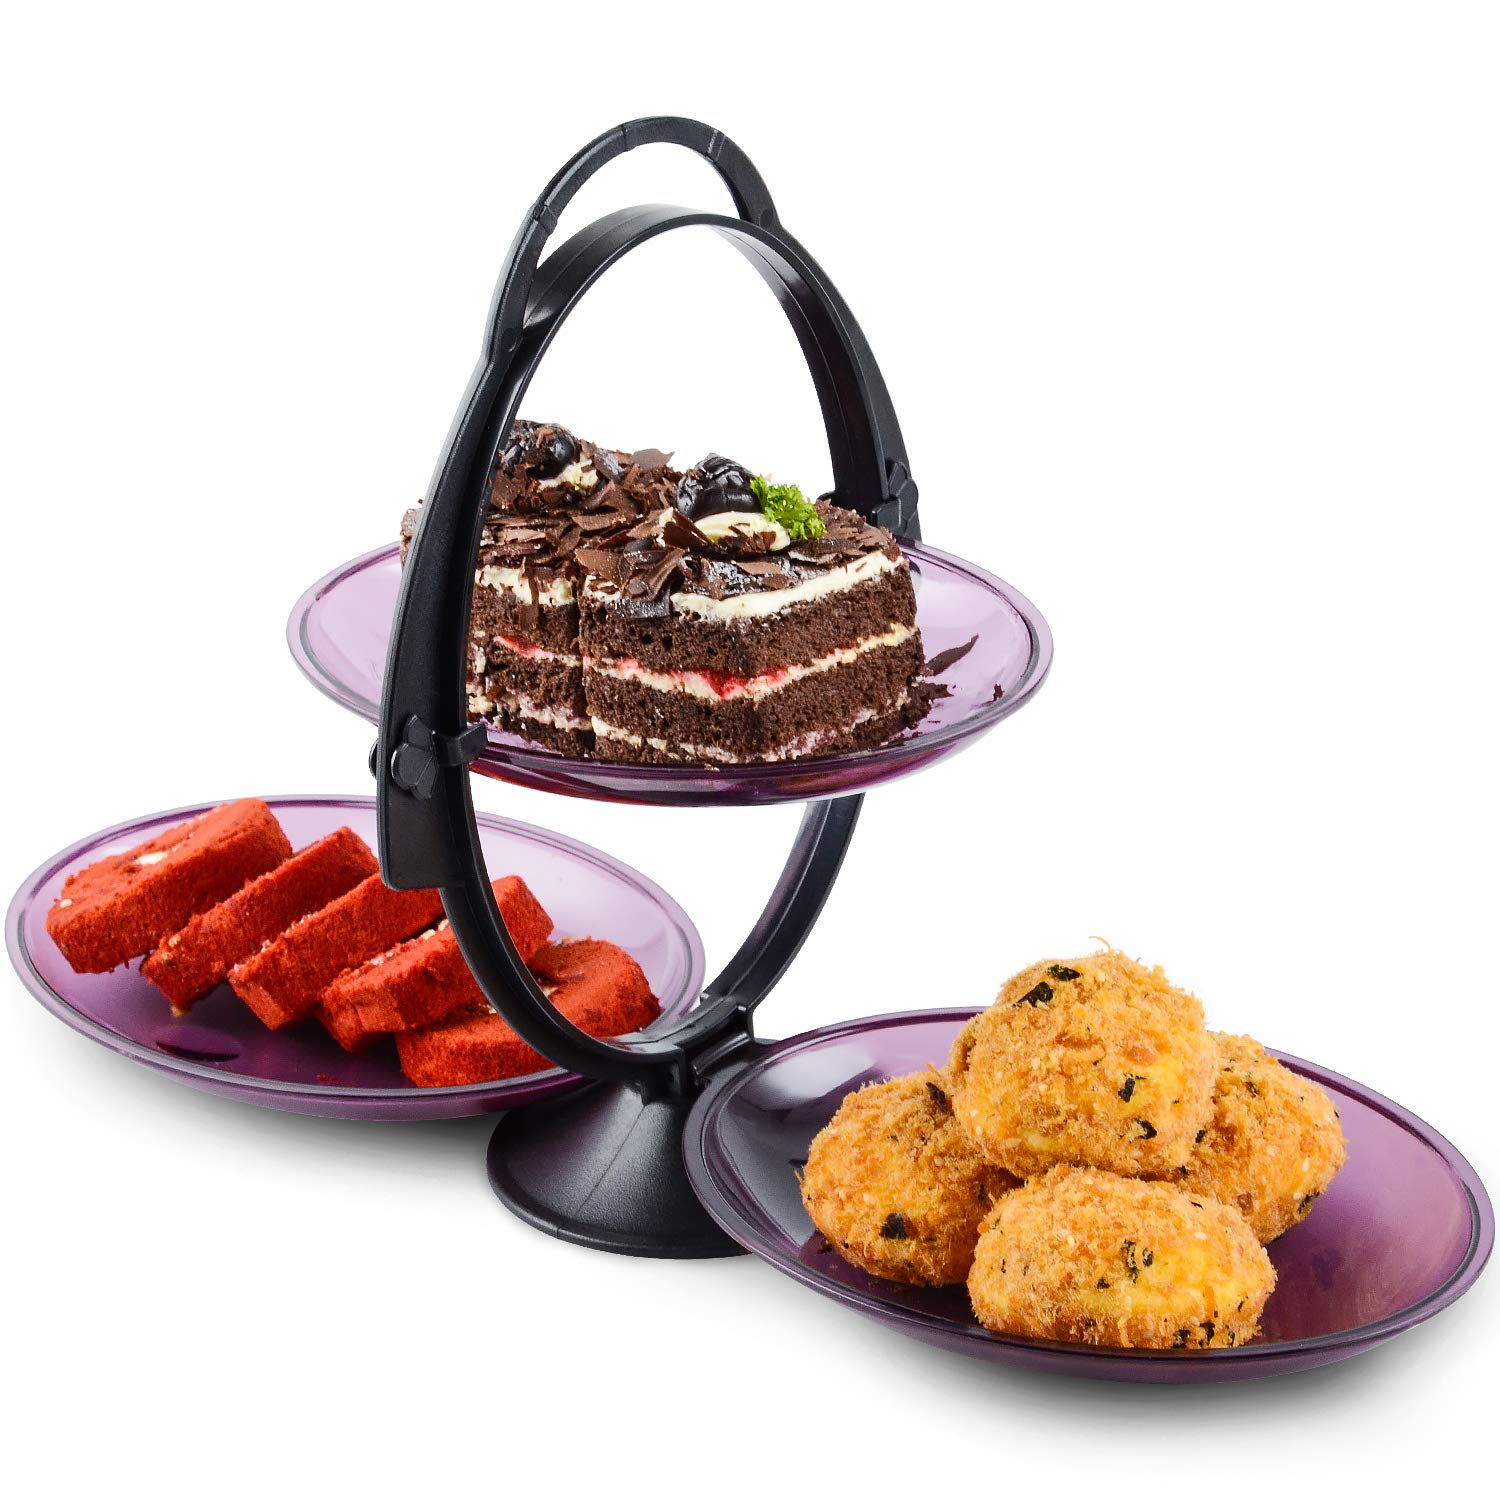 Cupcake Stand Dessert Plates,WorldBackyard Plastic 2-Tier 3 Serving Tray Display Tower for Kids Birthday Tea Party Baby Shower with Handle on Top.